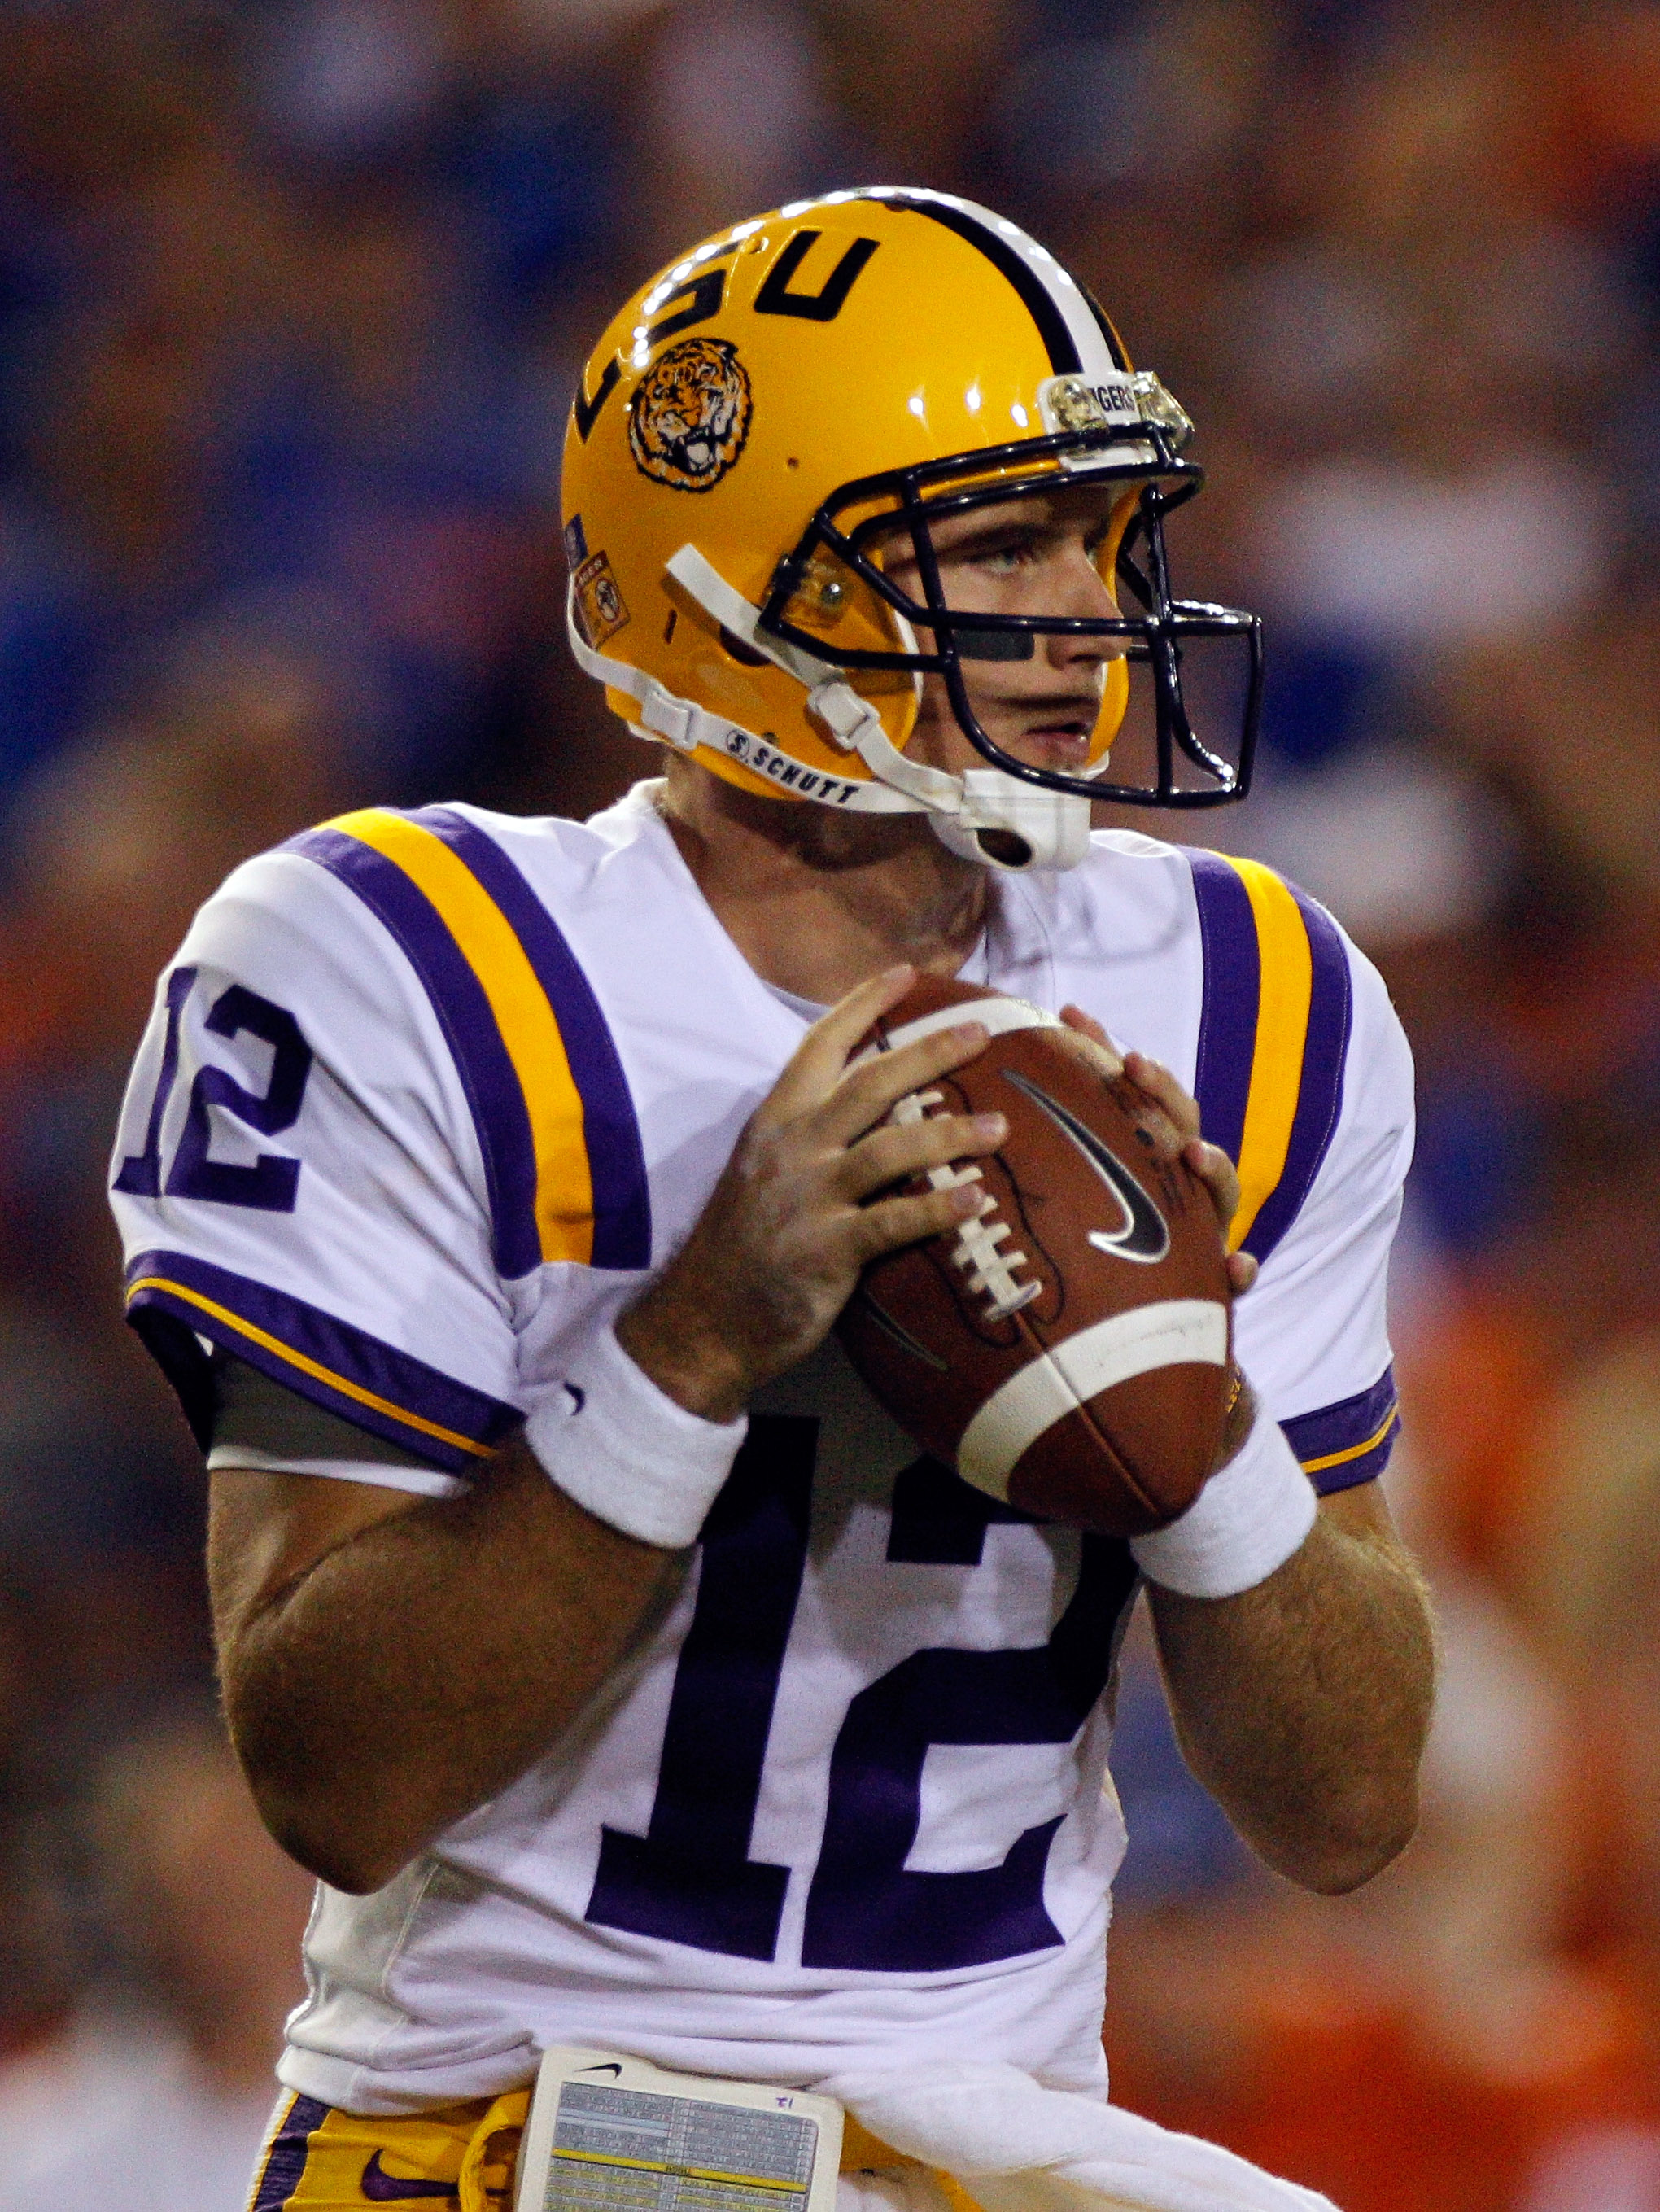 GAINESVILLE, FL - OCTOBER 09:  Quarterback Jarrett Lee #12 of the Louisiana State University Tigers attempts a pass during the game against the Florida Gators at Ben Hill Griffin Stadium on October 9, 2010 in Gainesville, Florida.  (Photo by Sam Greenwood